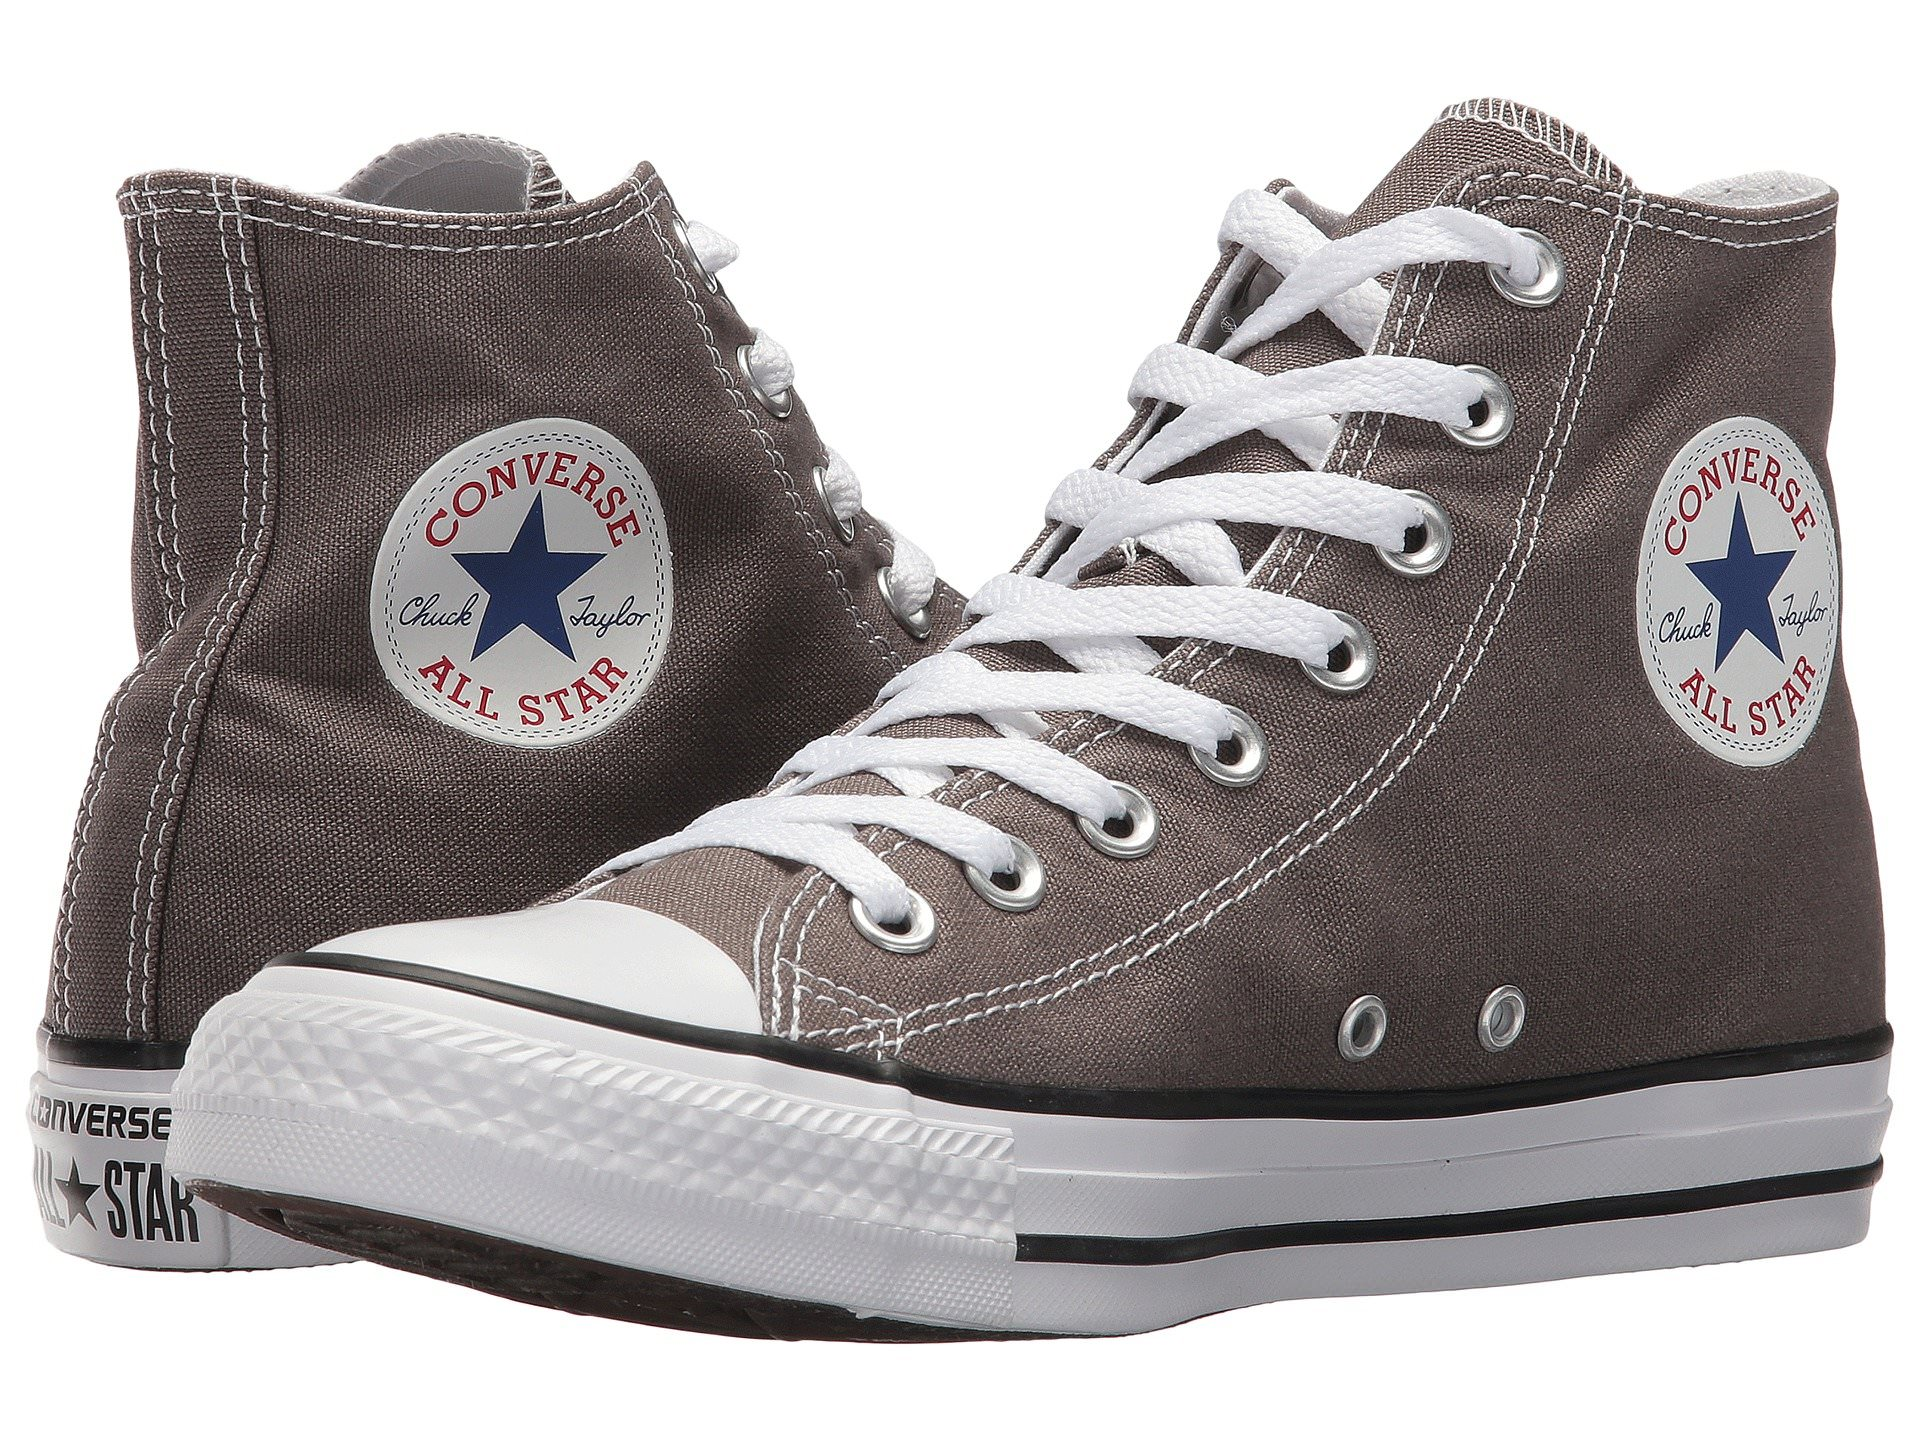 246376e37f04 Converse CHUCK TAYLOR ALL STAR Unisex Charcoal Gray Canvas HighTop ...